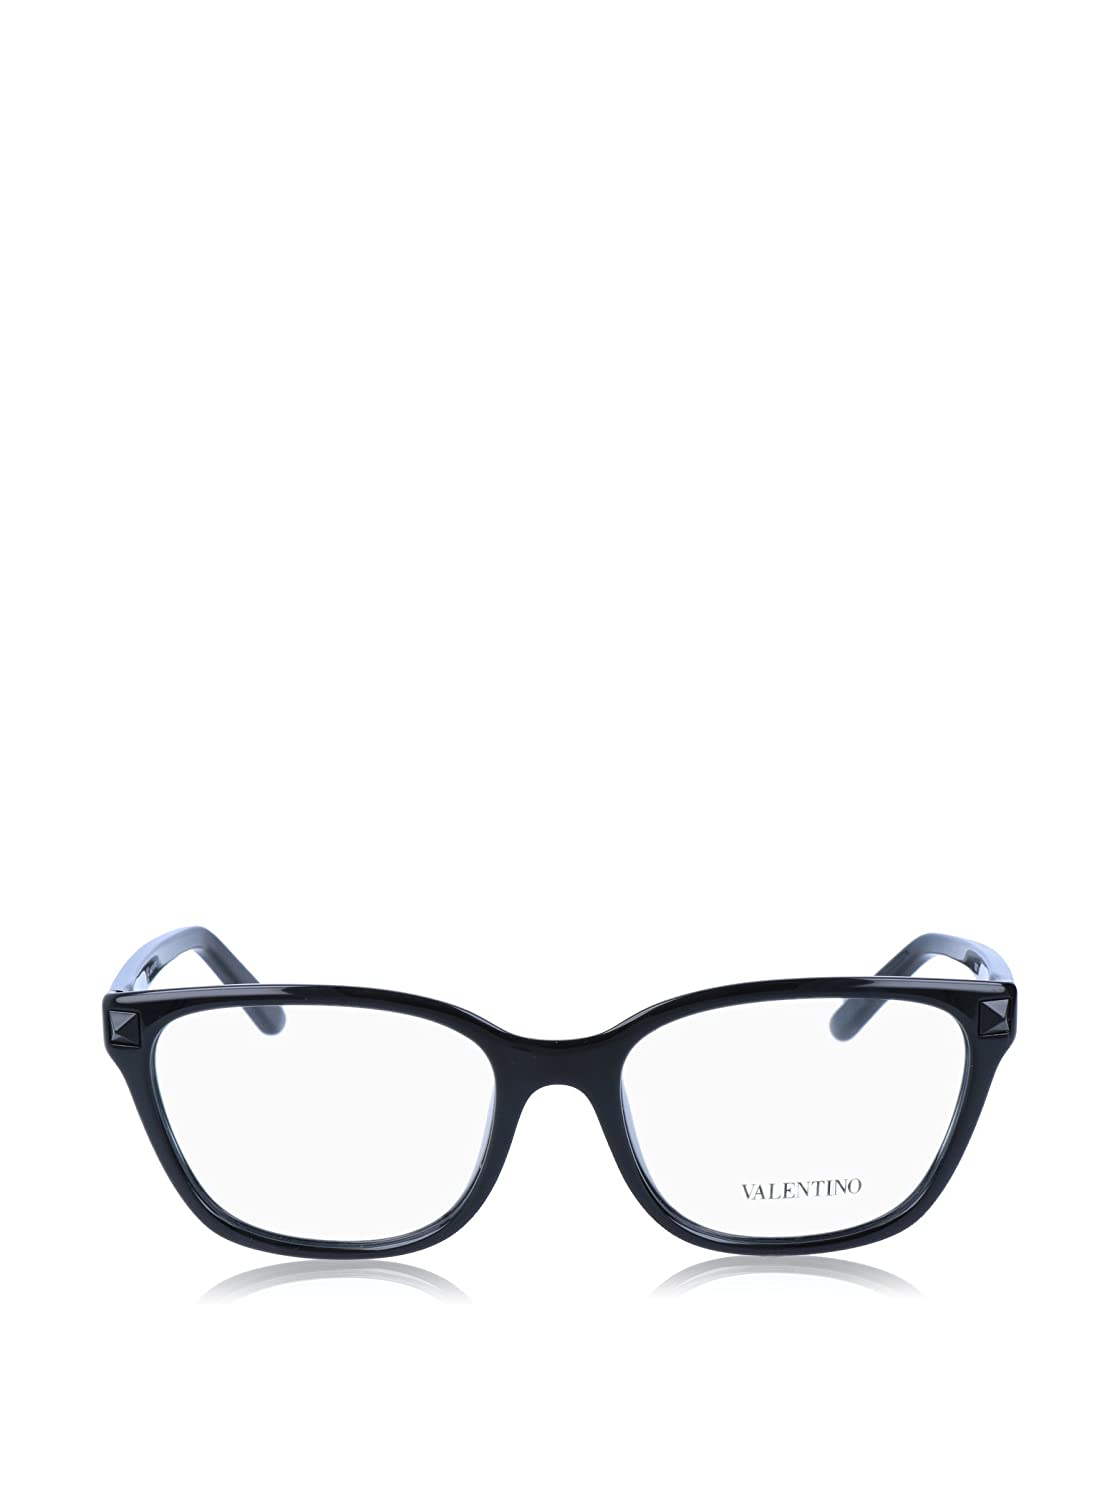 Amazon.com: VALENTINO Eyeglasses V2677 001 Black 52MM: Clothing